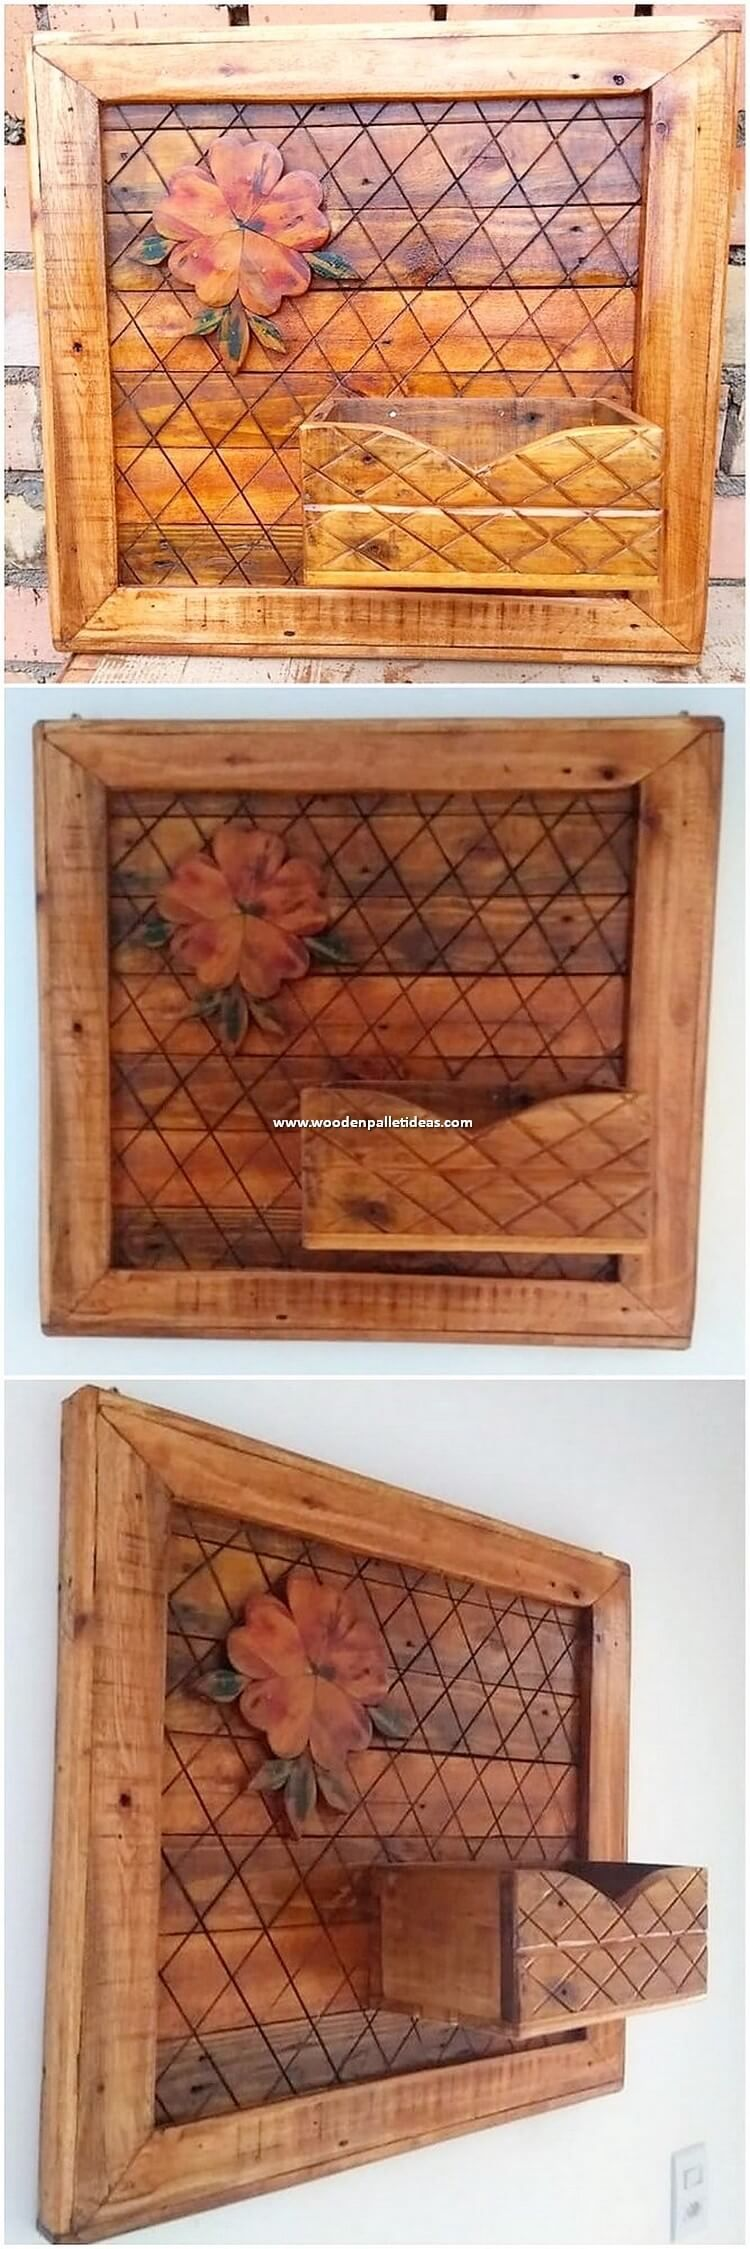 Genius Ideas To Reuse Old Wood Pallets Tools And